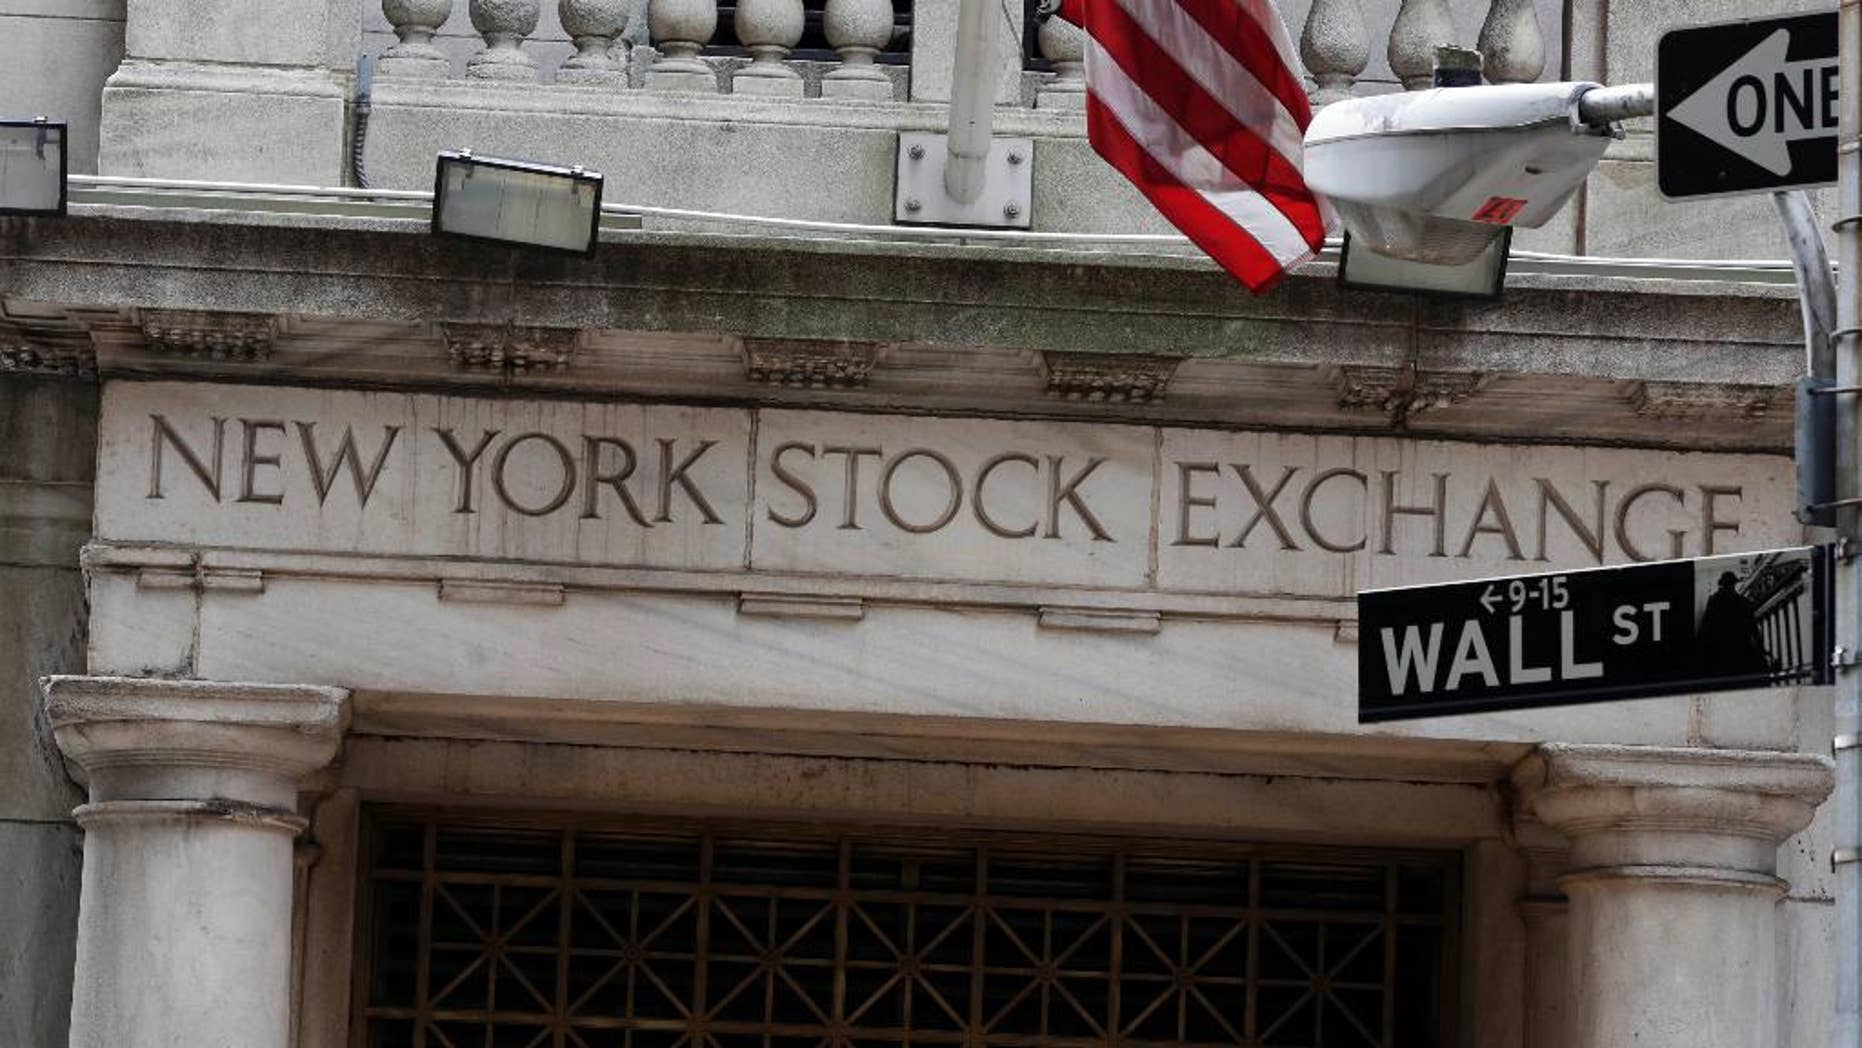 FILE - This Oct. 2, 2014 file photo shows the Wall Street entrance of the New York Stock Exchange, in New York. U.S. stocks opened lower Wednesday, April 29, 2015, as the economy skidded to a near halt in the first three months of the year after being battered by harsh weather, plunging exports and sharp cutbacks in oil and gas drilling. (AP Photo/Richard Drew, File)